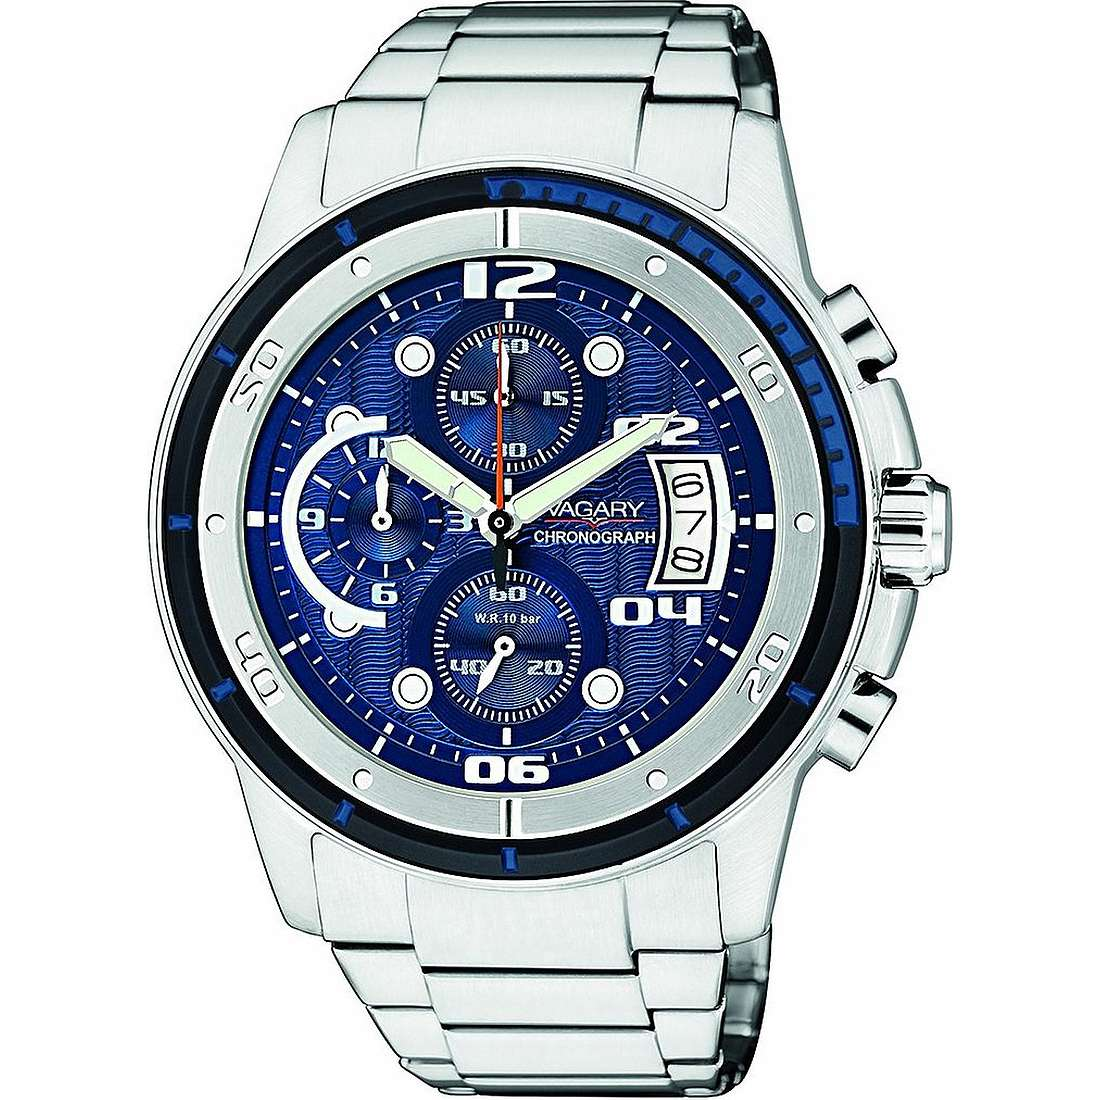 montre chronographe homme Vagary By Citizen IA8-211-71